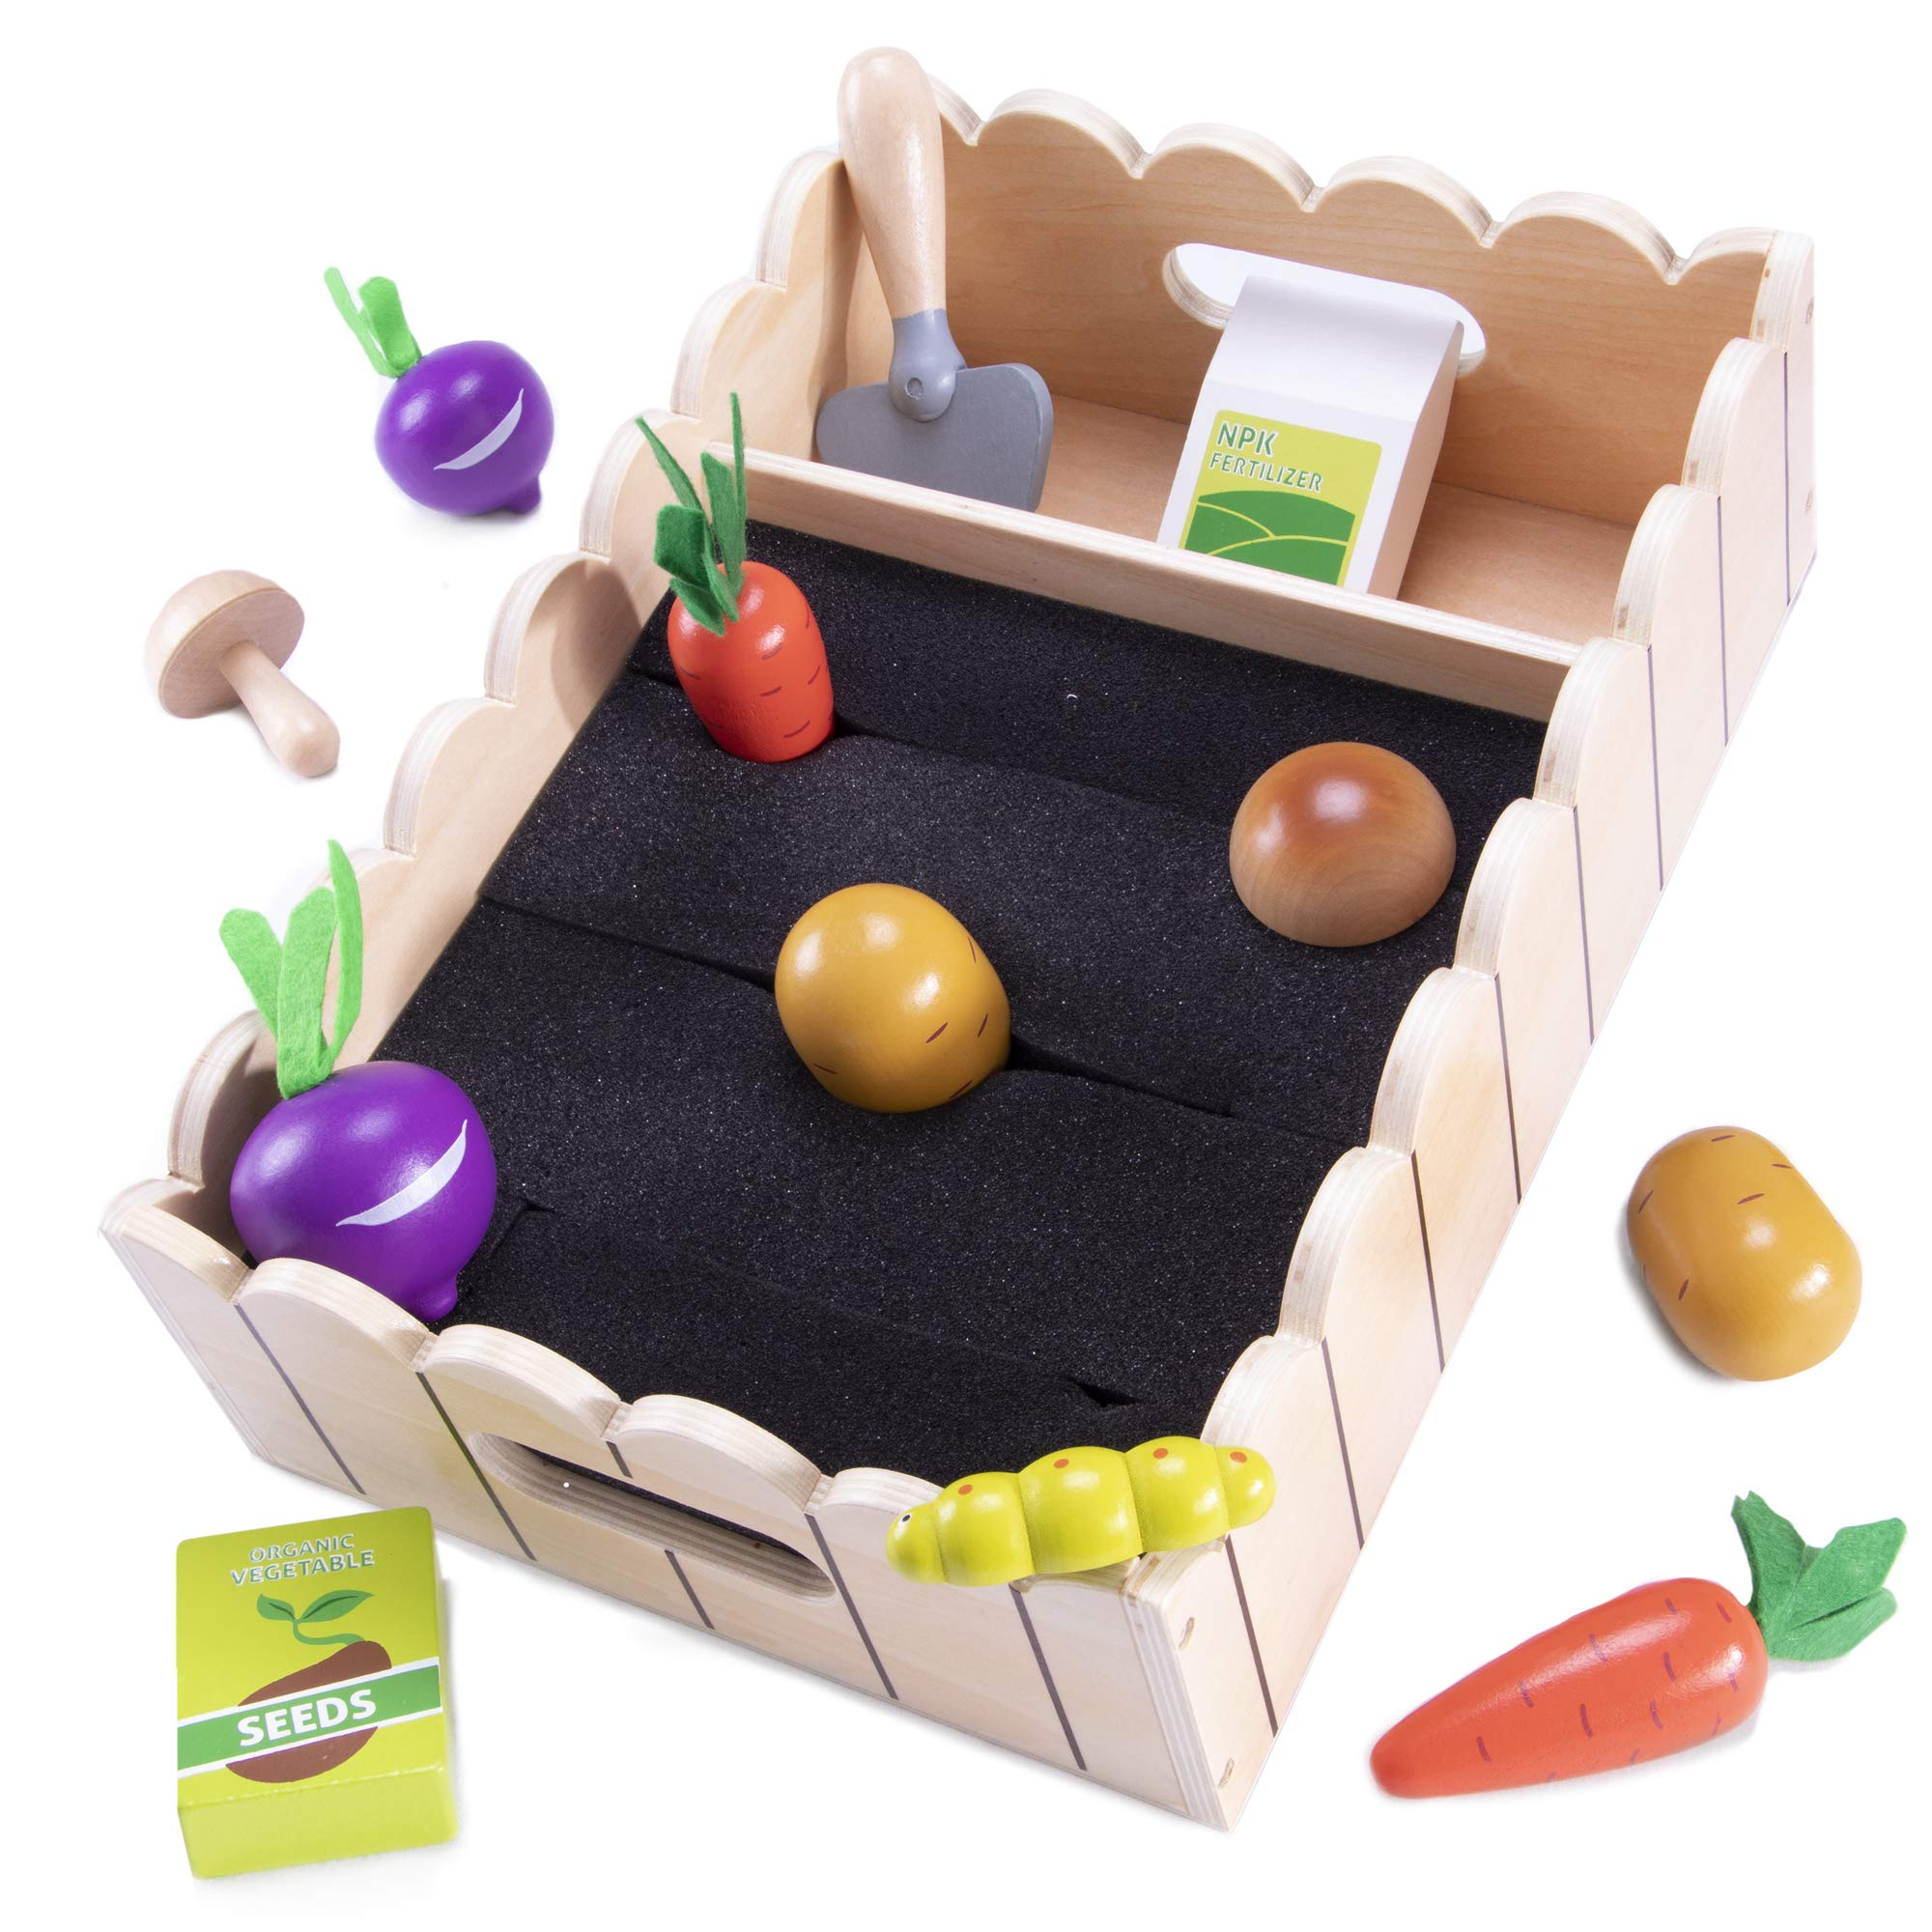 My Little Garden | Growing Vegetables Wooden Playset Activity for Children | Includes Carrots, Beets, Potatoes, Mushrooms, Trowel, Seeds, Fertilizer, Caterpillar (13 pcs.) | Early Learning Toy